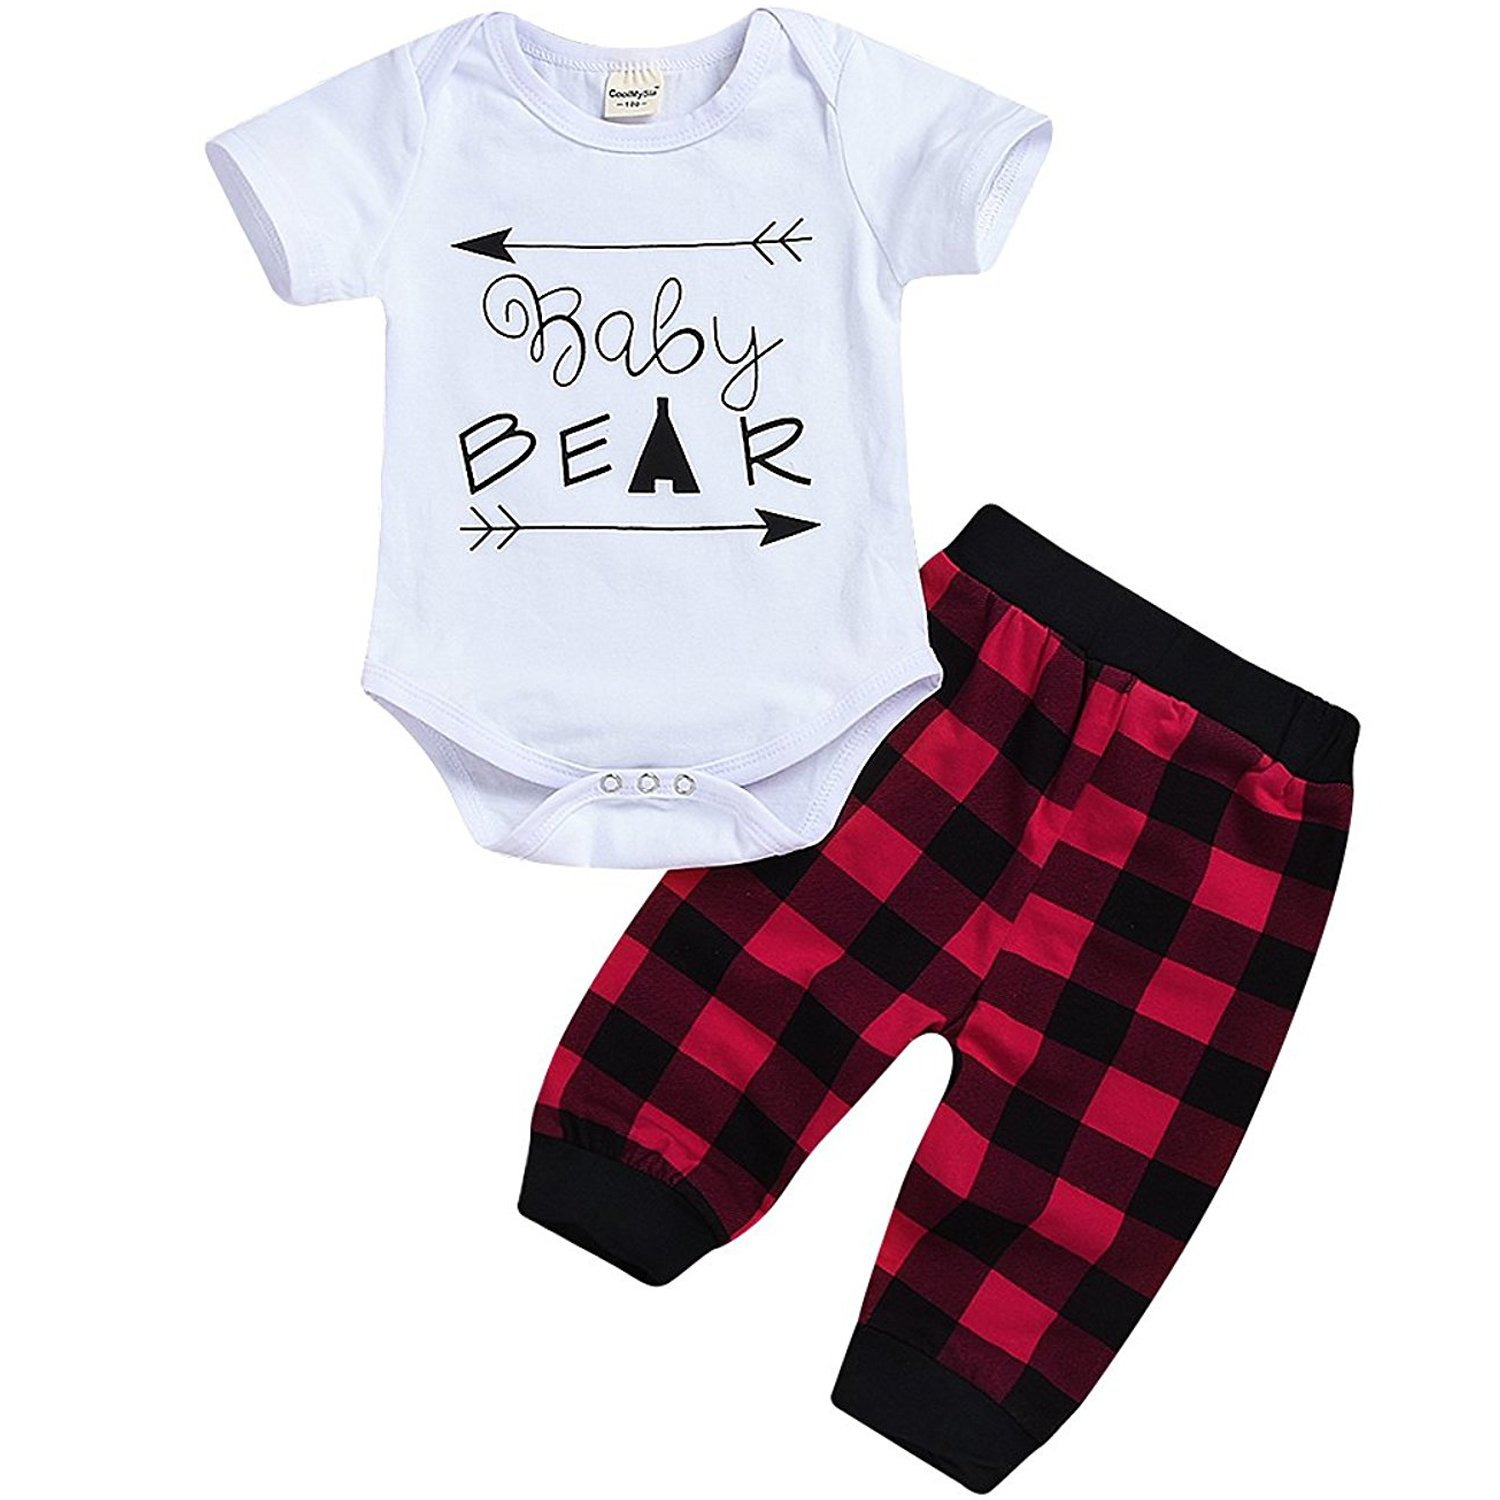 Newborn Infant Baby Boy Girl Outfits Baby Bear Romper+Plaid Pants Summer Clothes